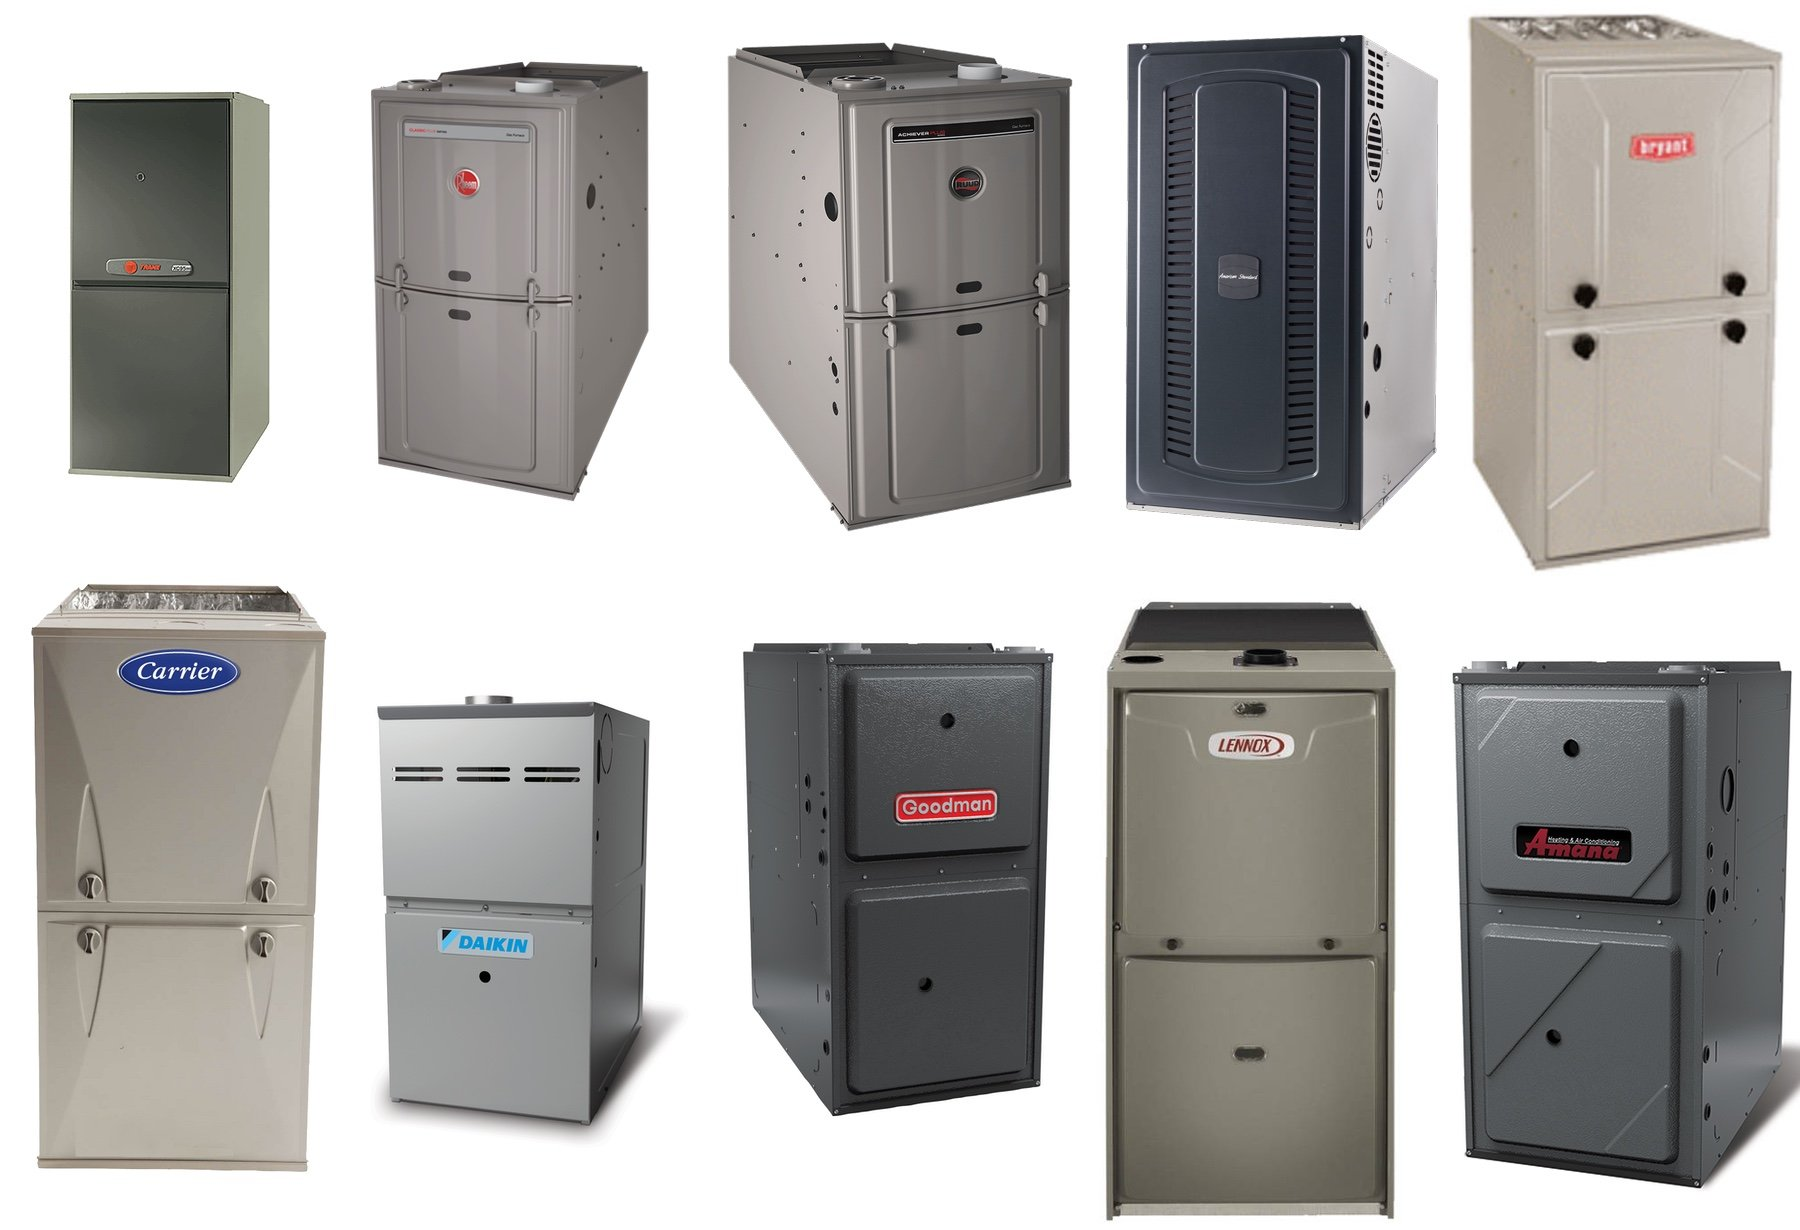 Top 10 Furnace Brands Of 2019 Selecting The Best Furnace Brand